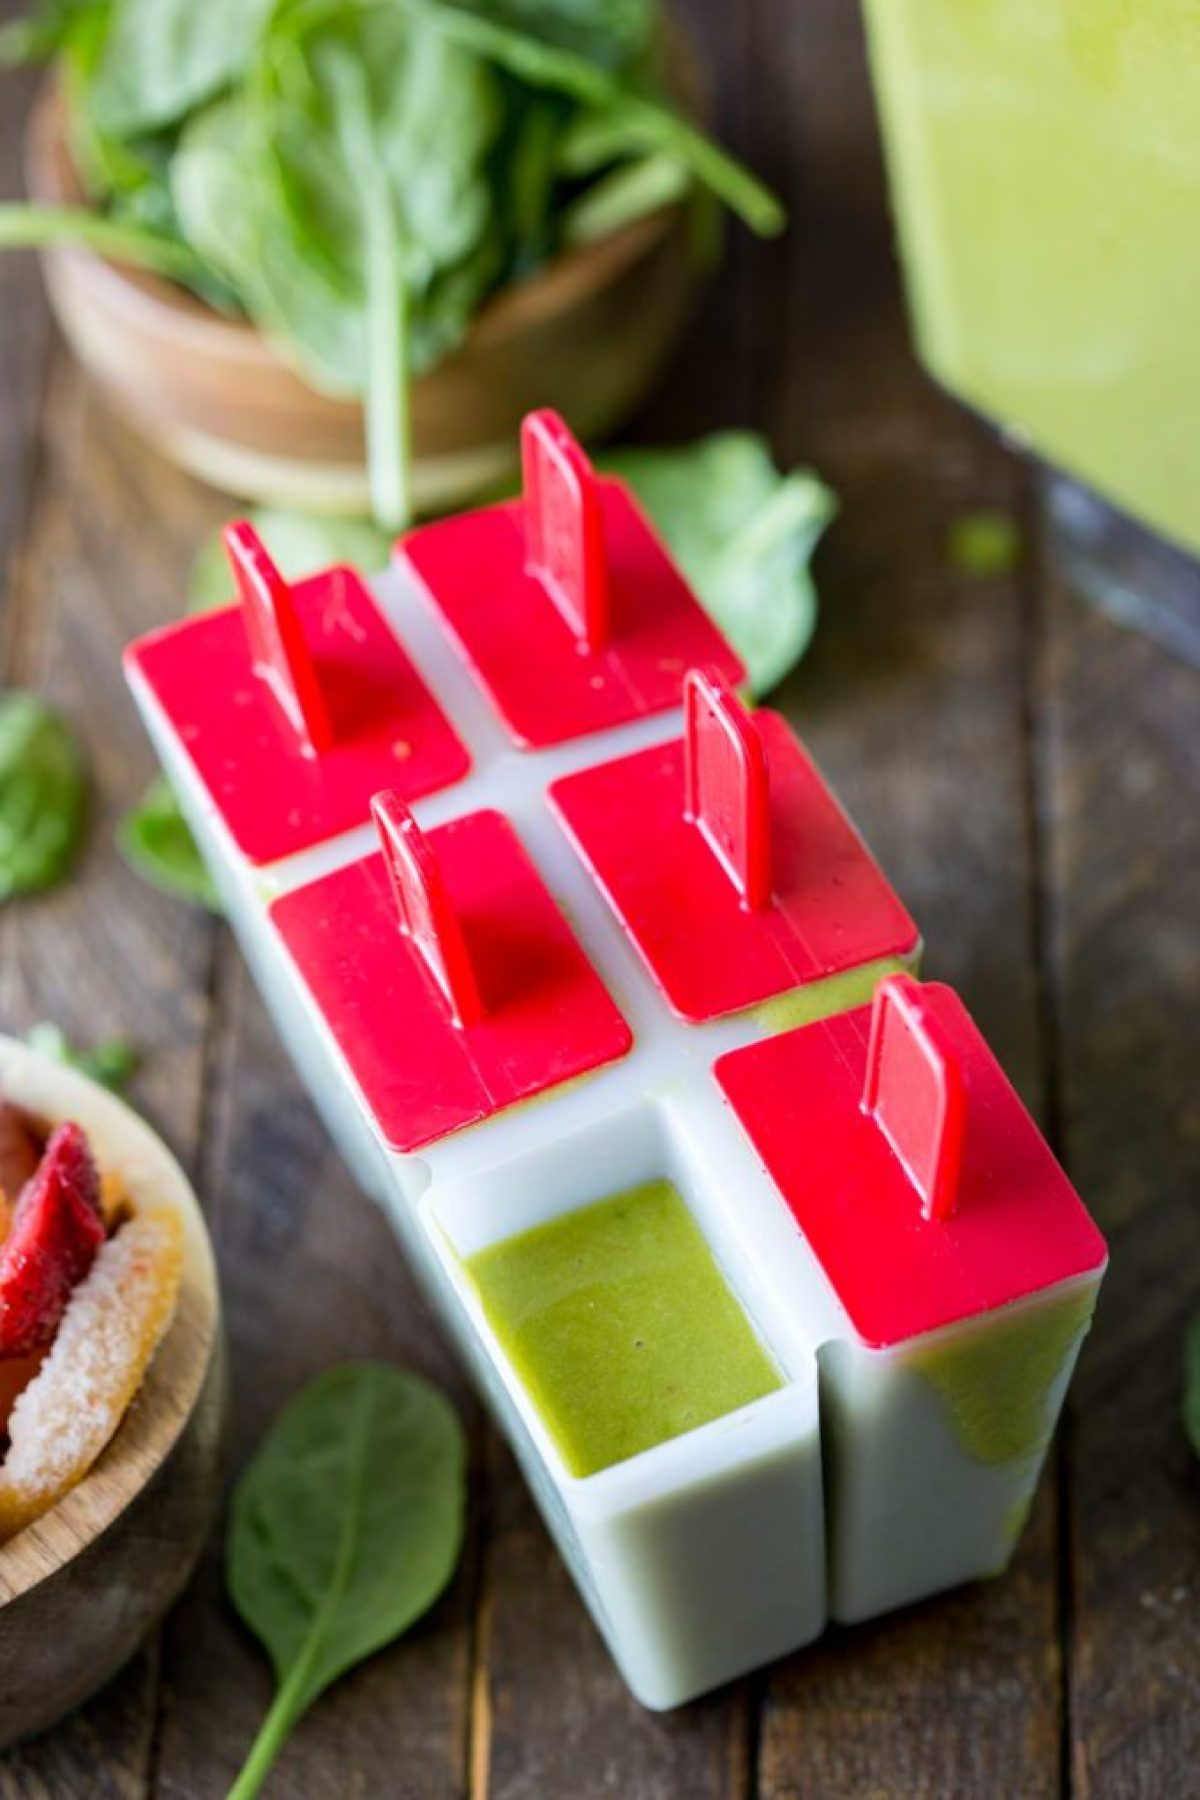 Green smoothie pops in mold